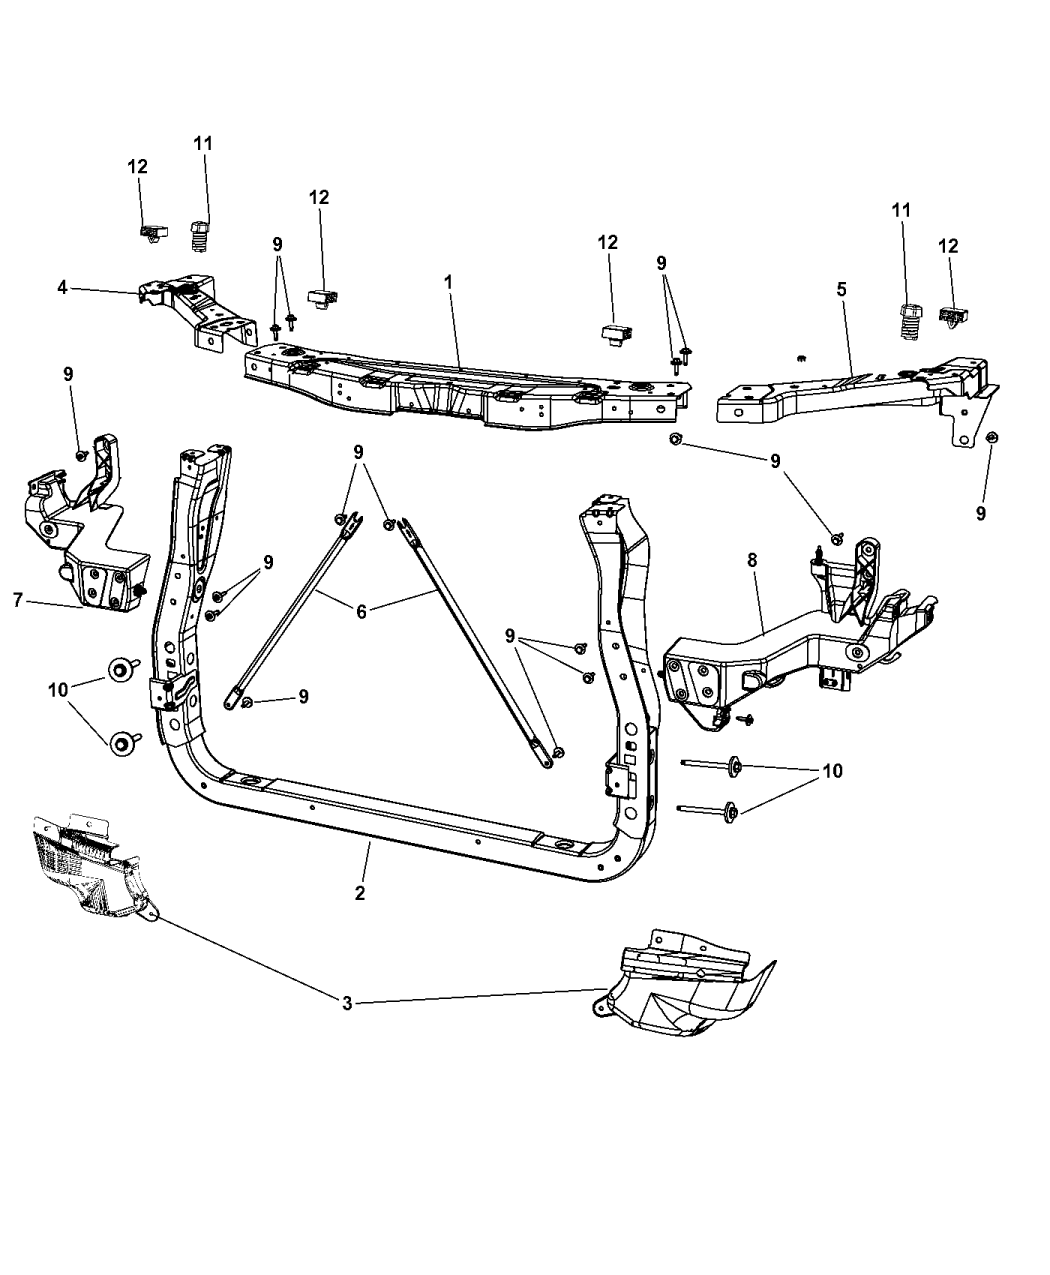 2012 jeep grand cherokee radiator support